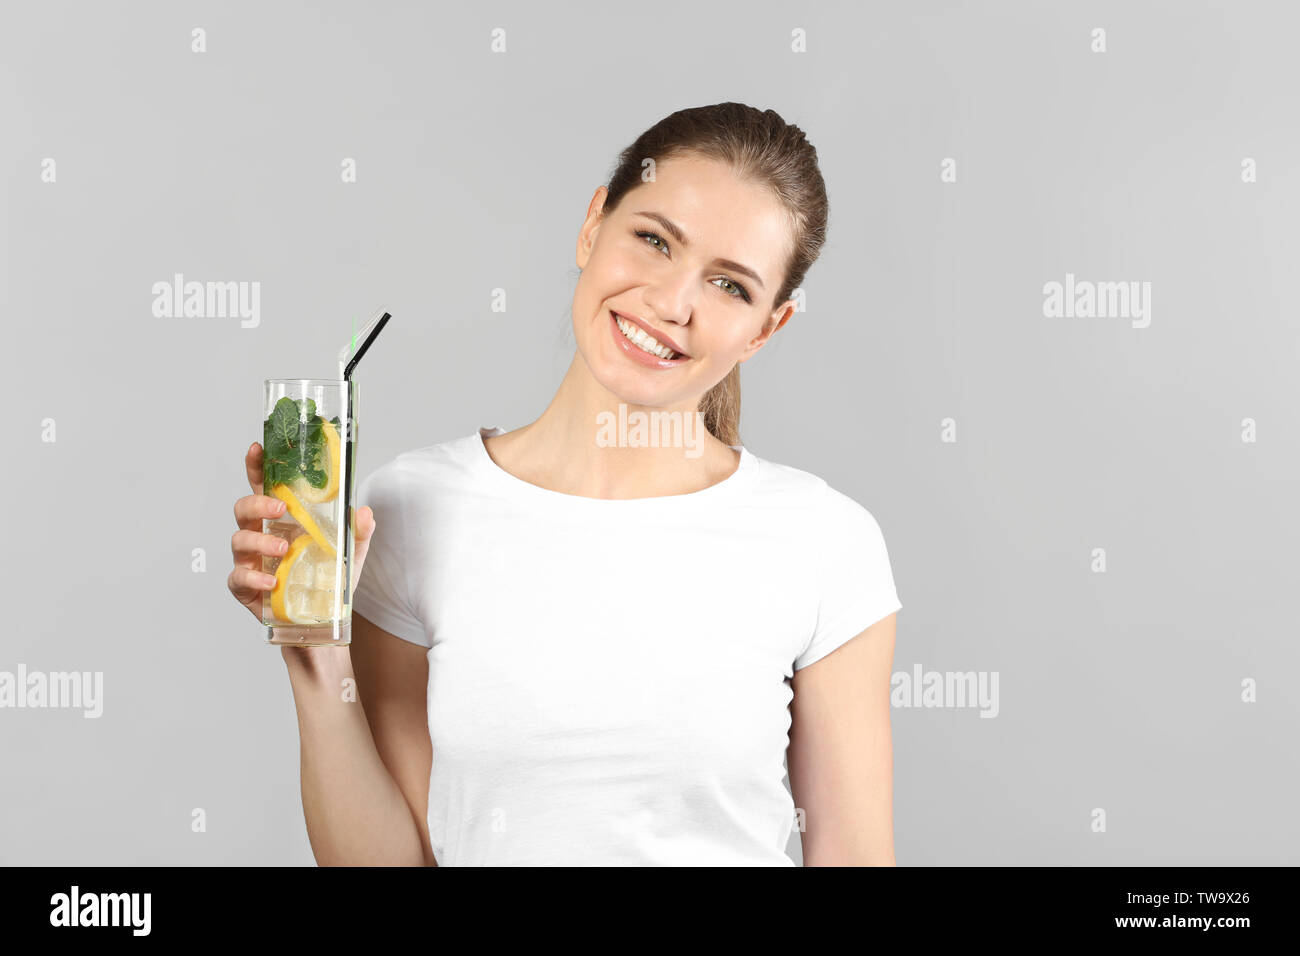 Beautiful young woman with glass of lemonade on grey background - Stock Image